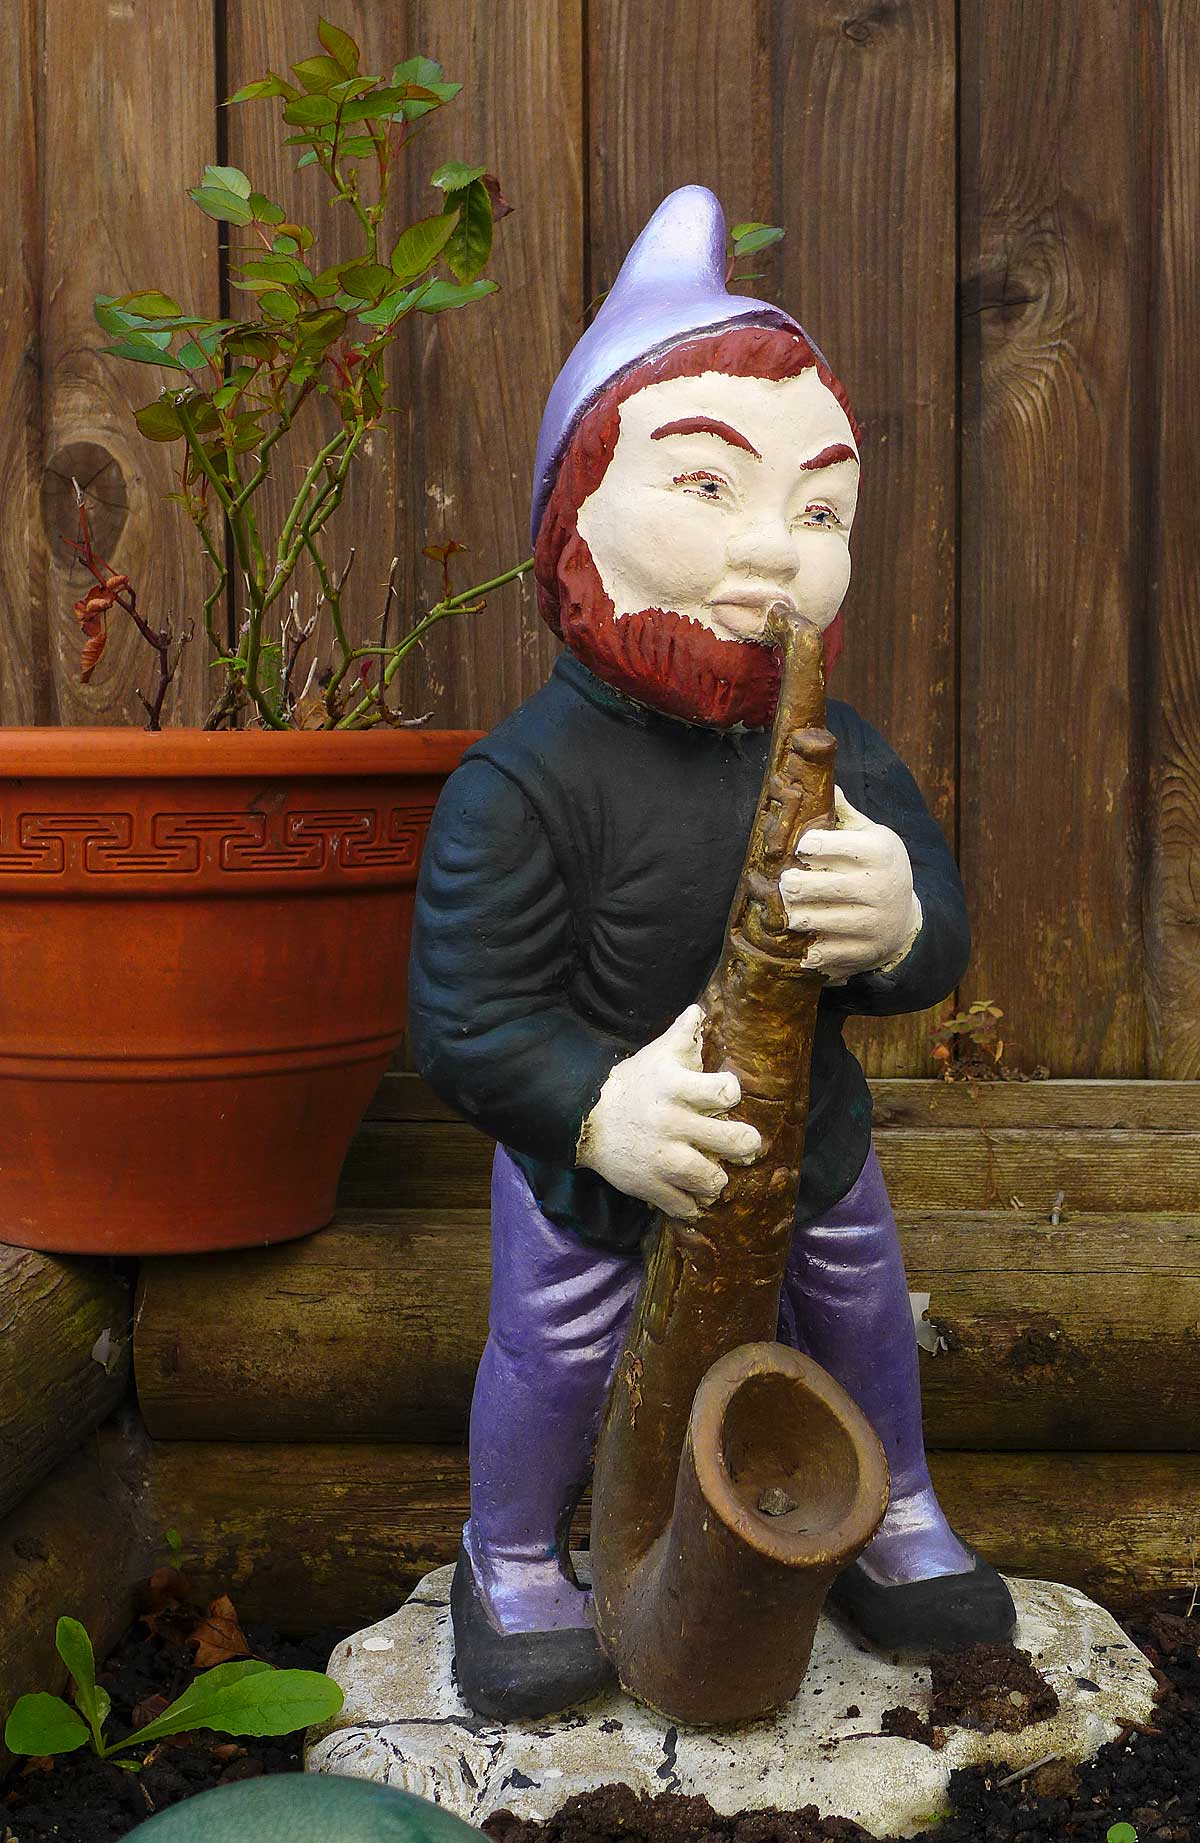 Vintage Sax-Playing Garden Gnome | The Bassic Sax Blog